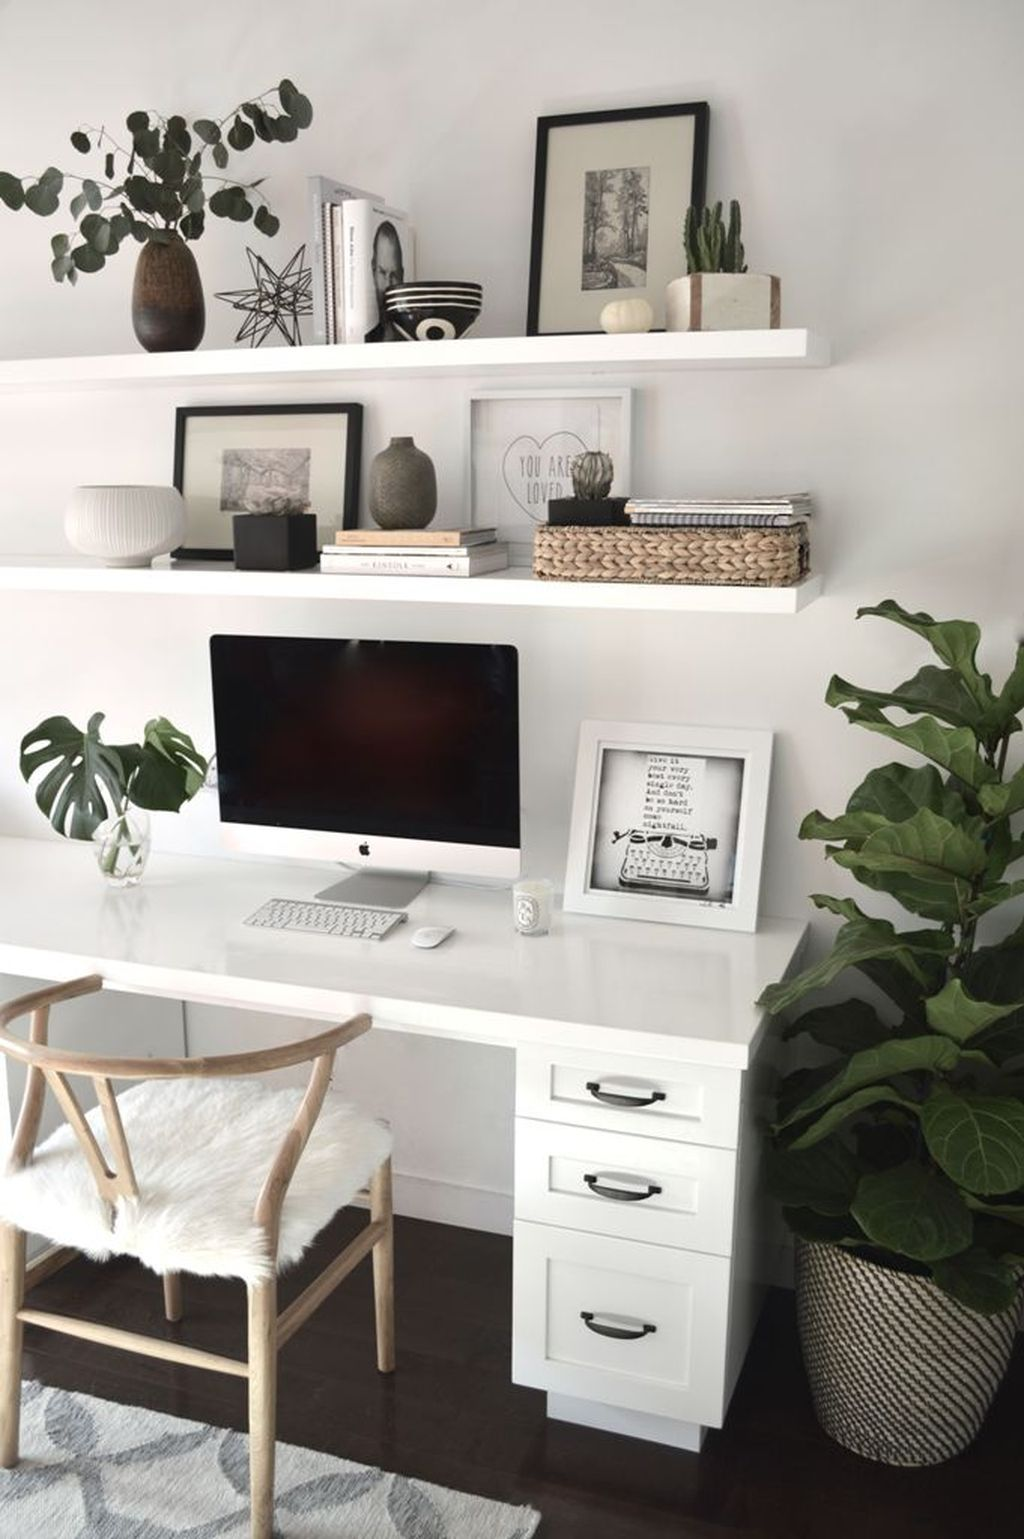 47 Simple Workspace Office Design Ideas is part of Simple Workspace Office Design Ideas Hoomdsgn - If you're looking for home office design ideas, here's some thoughts to help get your creative juices flowing  The world […]